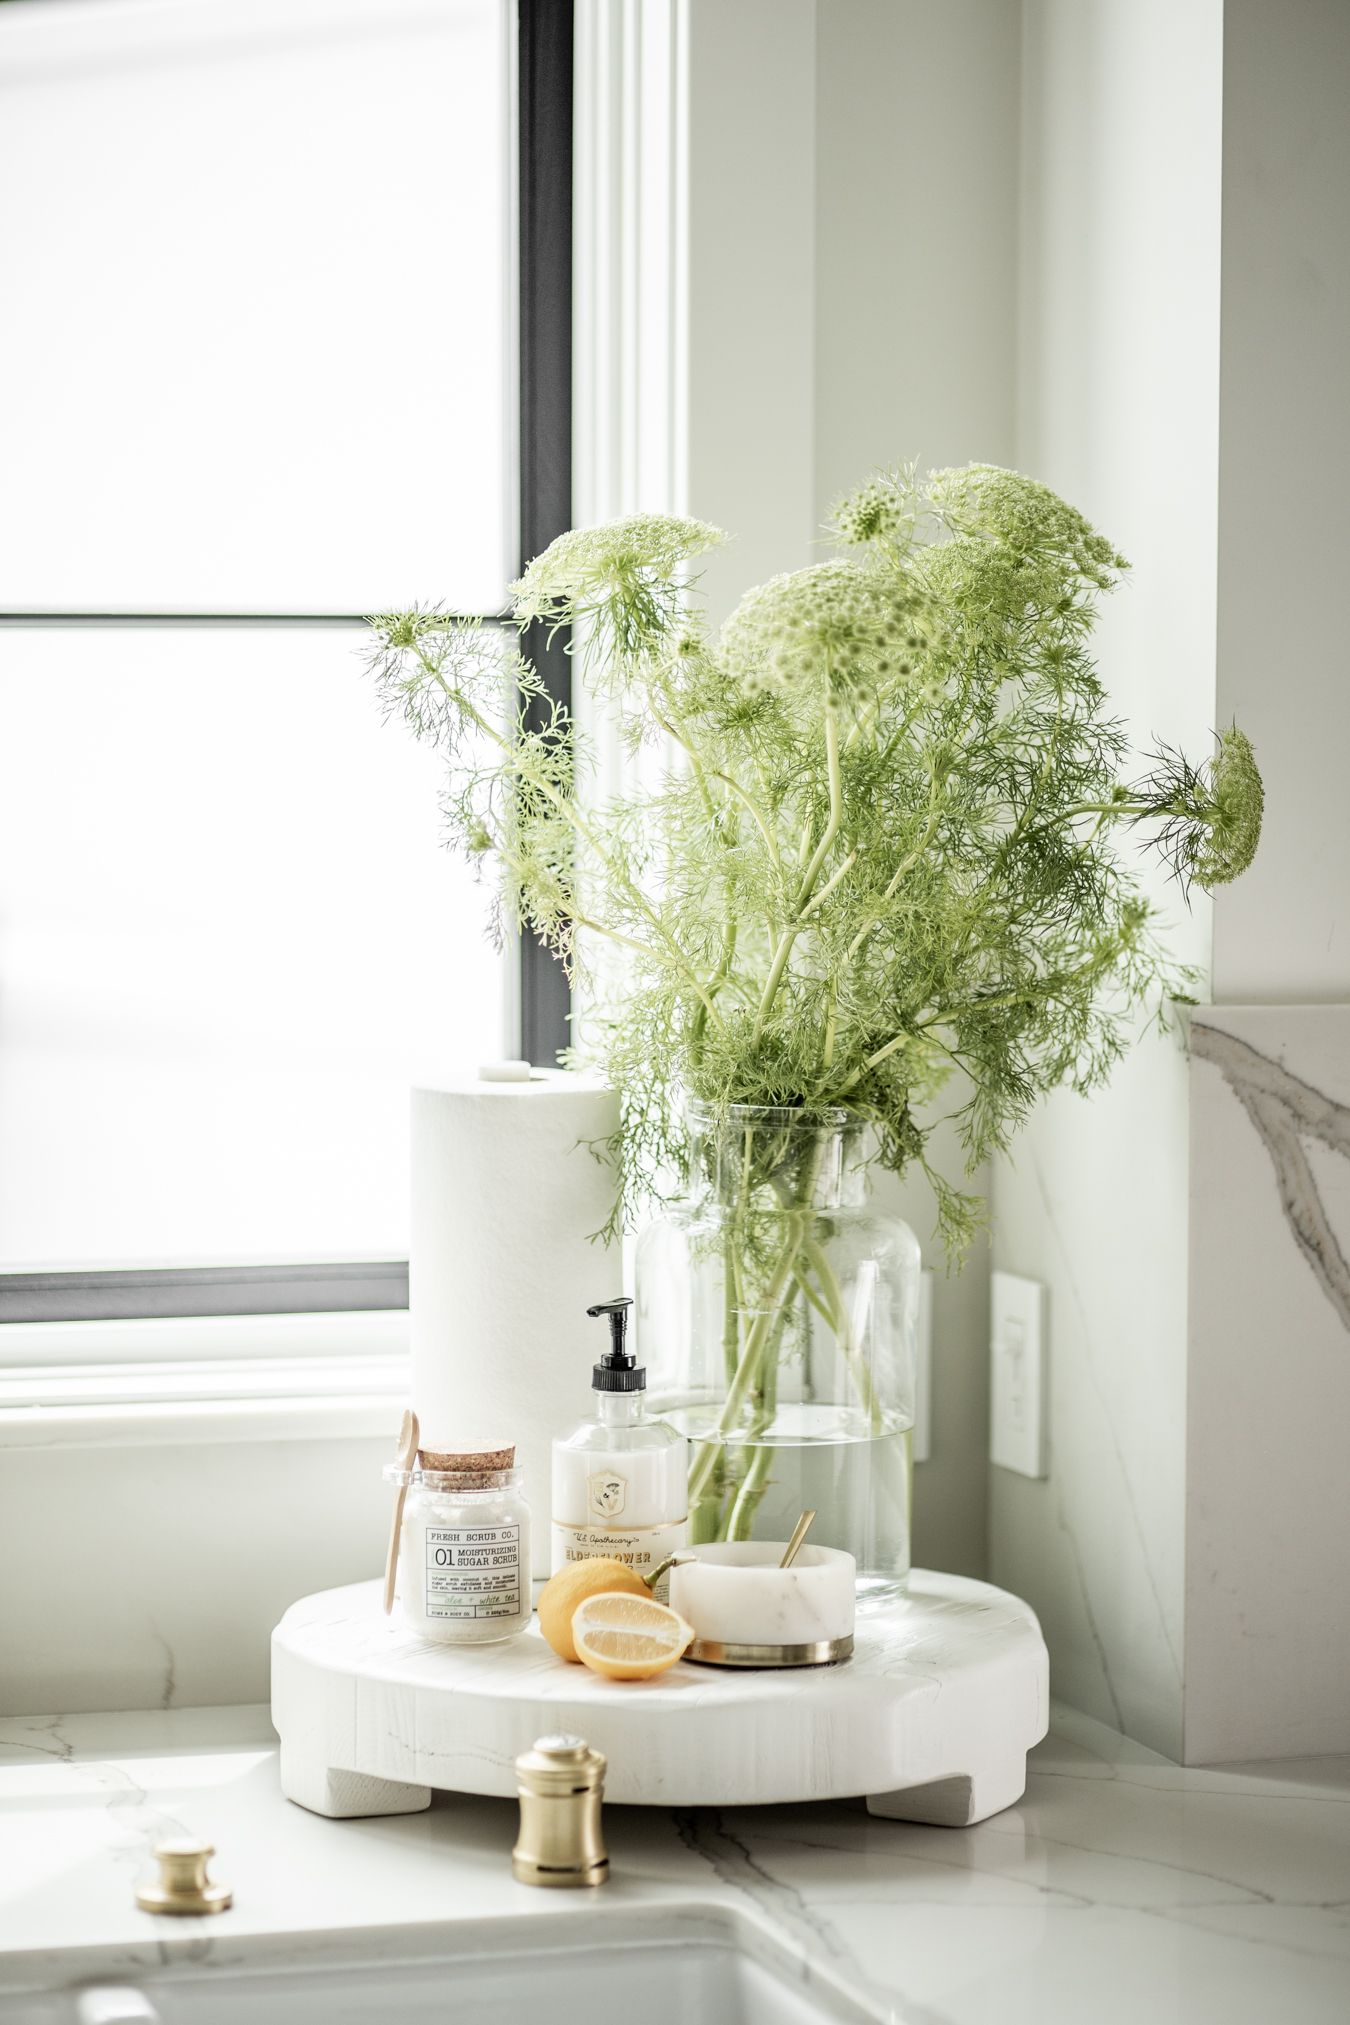 Loving The Feel Of Spring Right Now We Added A Pop Of Greenery To Our Kitchen Sink Corner To Bri Kitchen Counter Decor Kitchen Accessories Decor Counter Decor